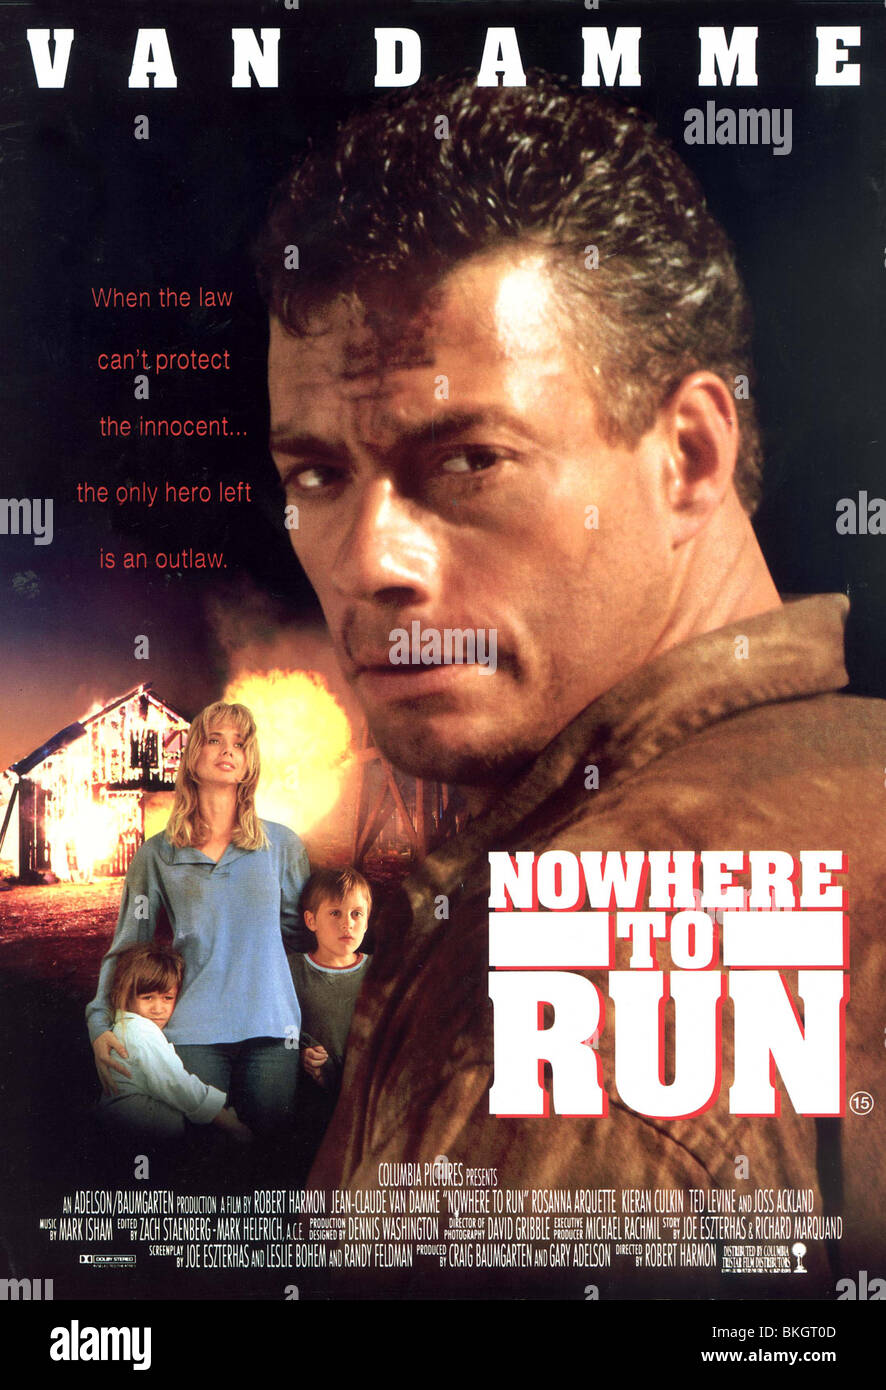 NOWHERE TO RUN -1993 POSTER - Stock Image